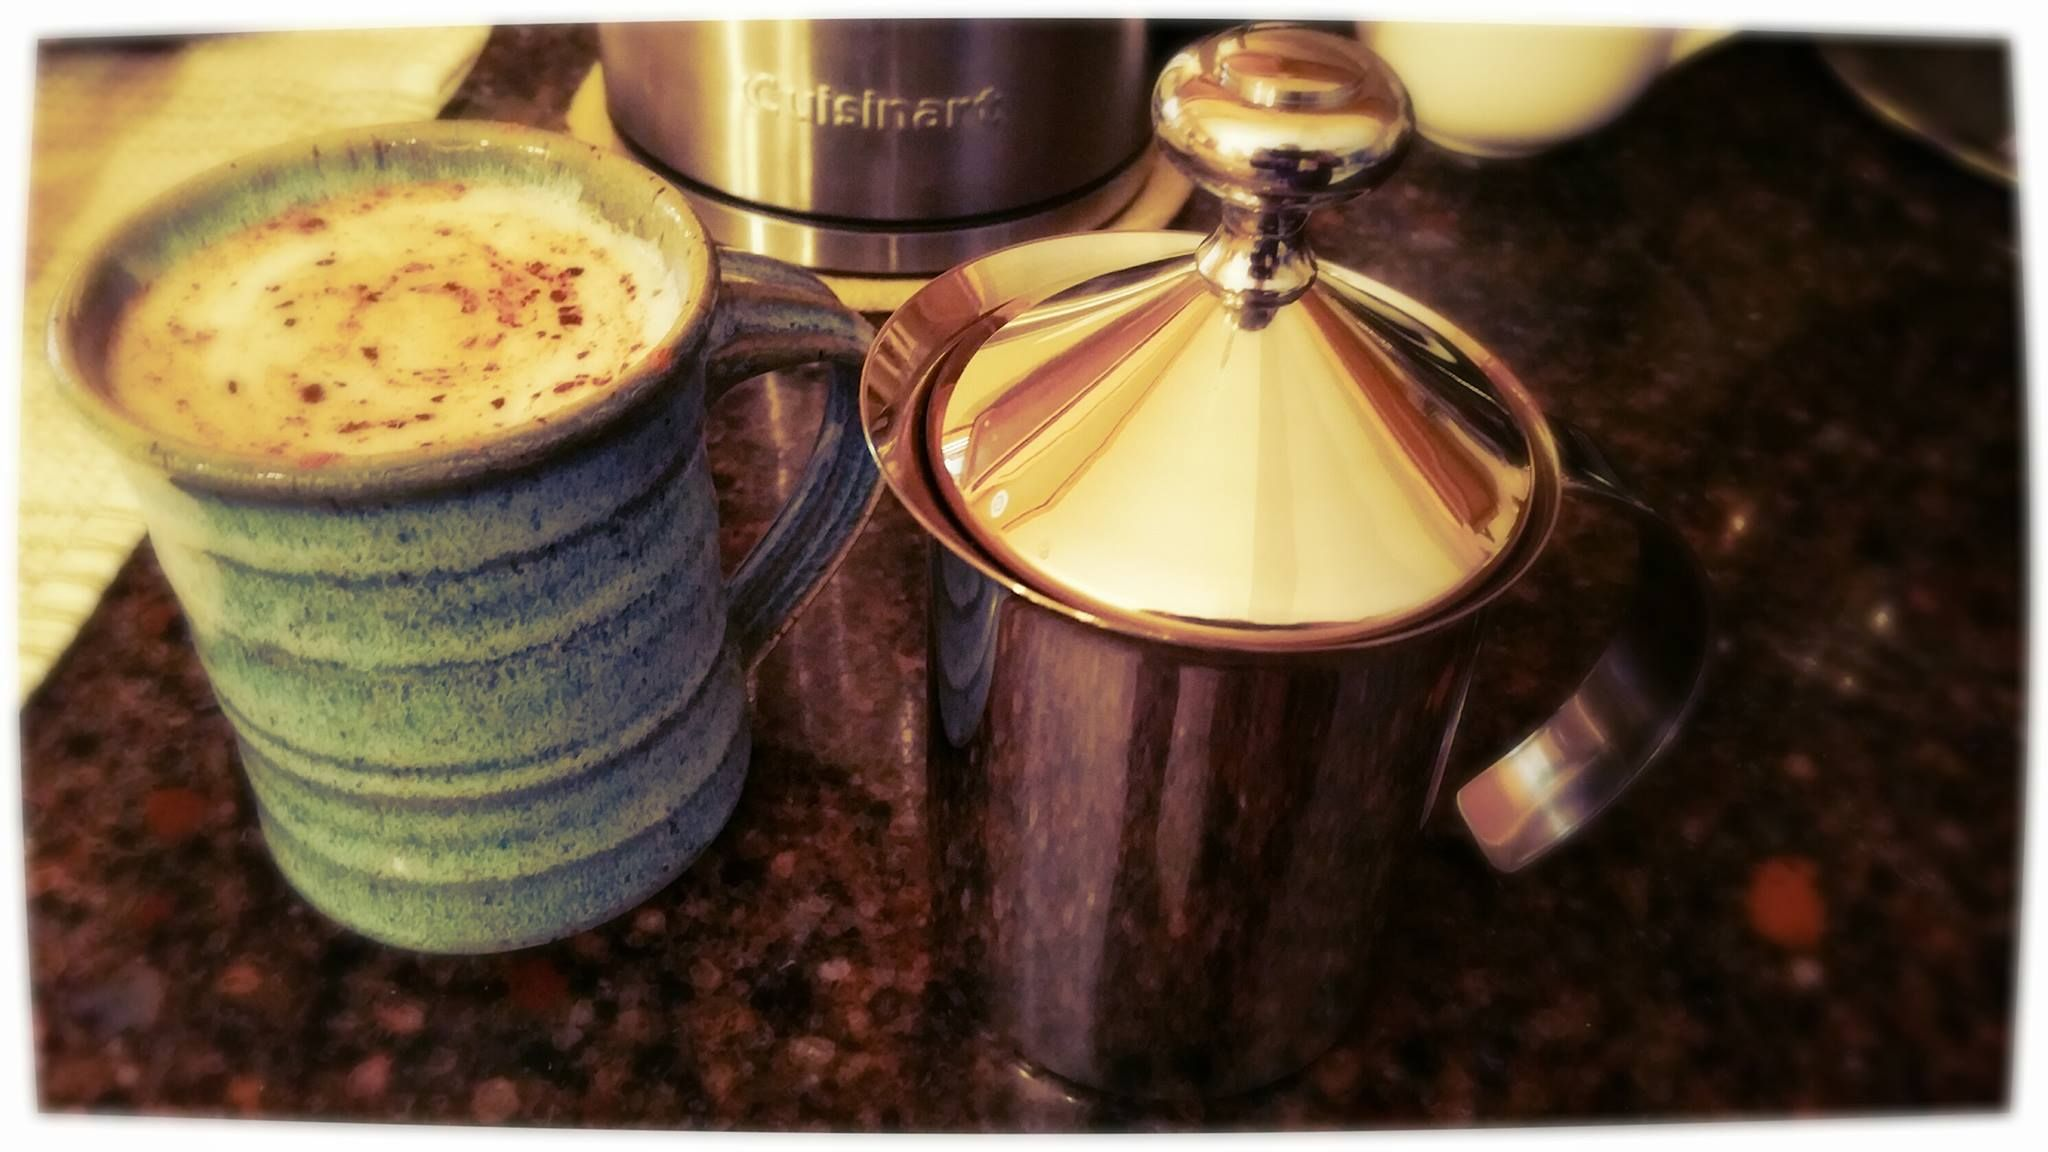 A beautiful glamor shot of a tea latte with frothed milk from our Stainless Steel Milk Frother. Thanks for sharing, Angela!